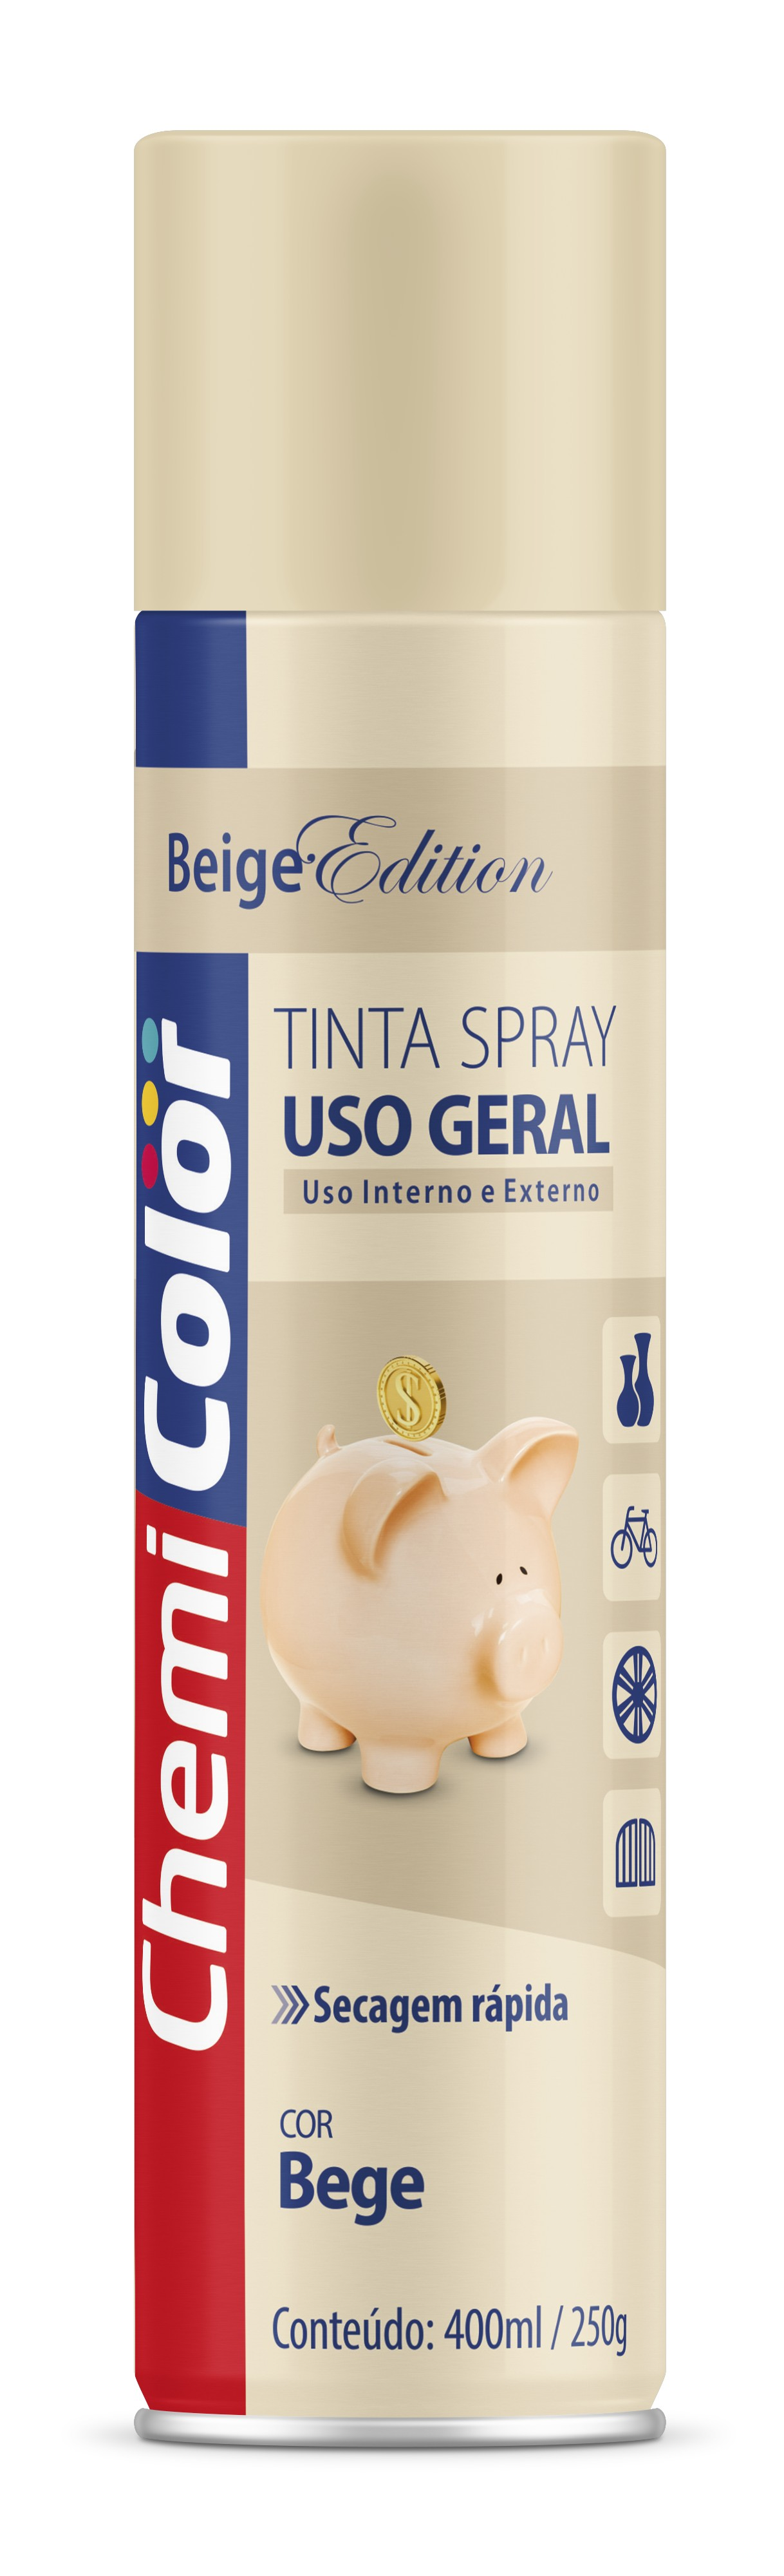 SPRAY BEGE USO GERAL 250G CHEMICOLOR